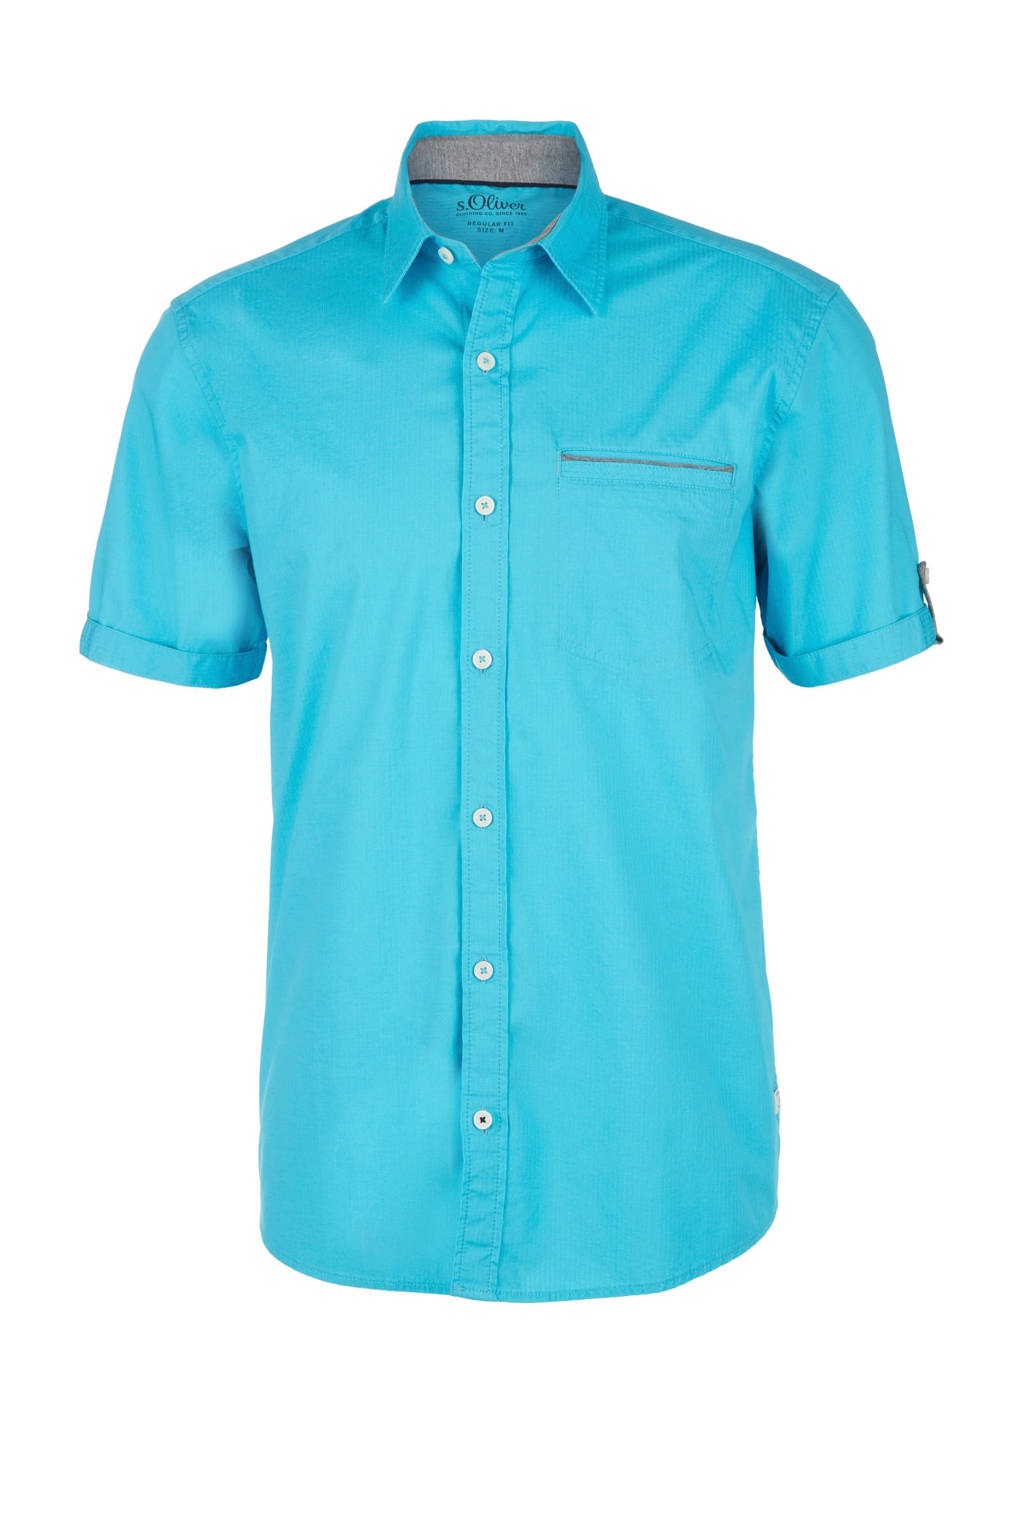 s.Oliver regular fit overhemd turquoise, Turquoise